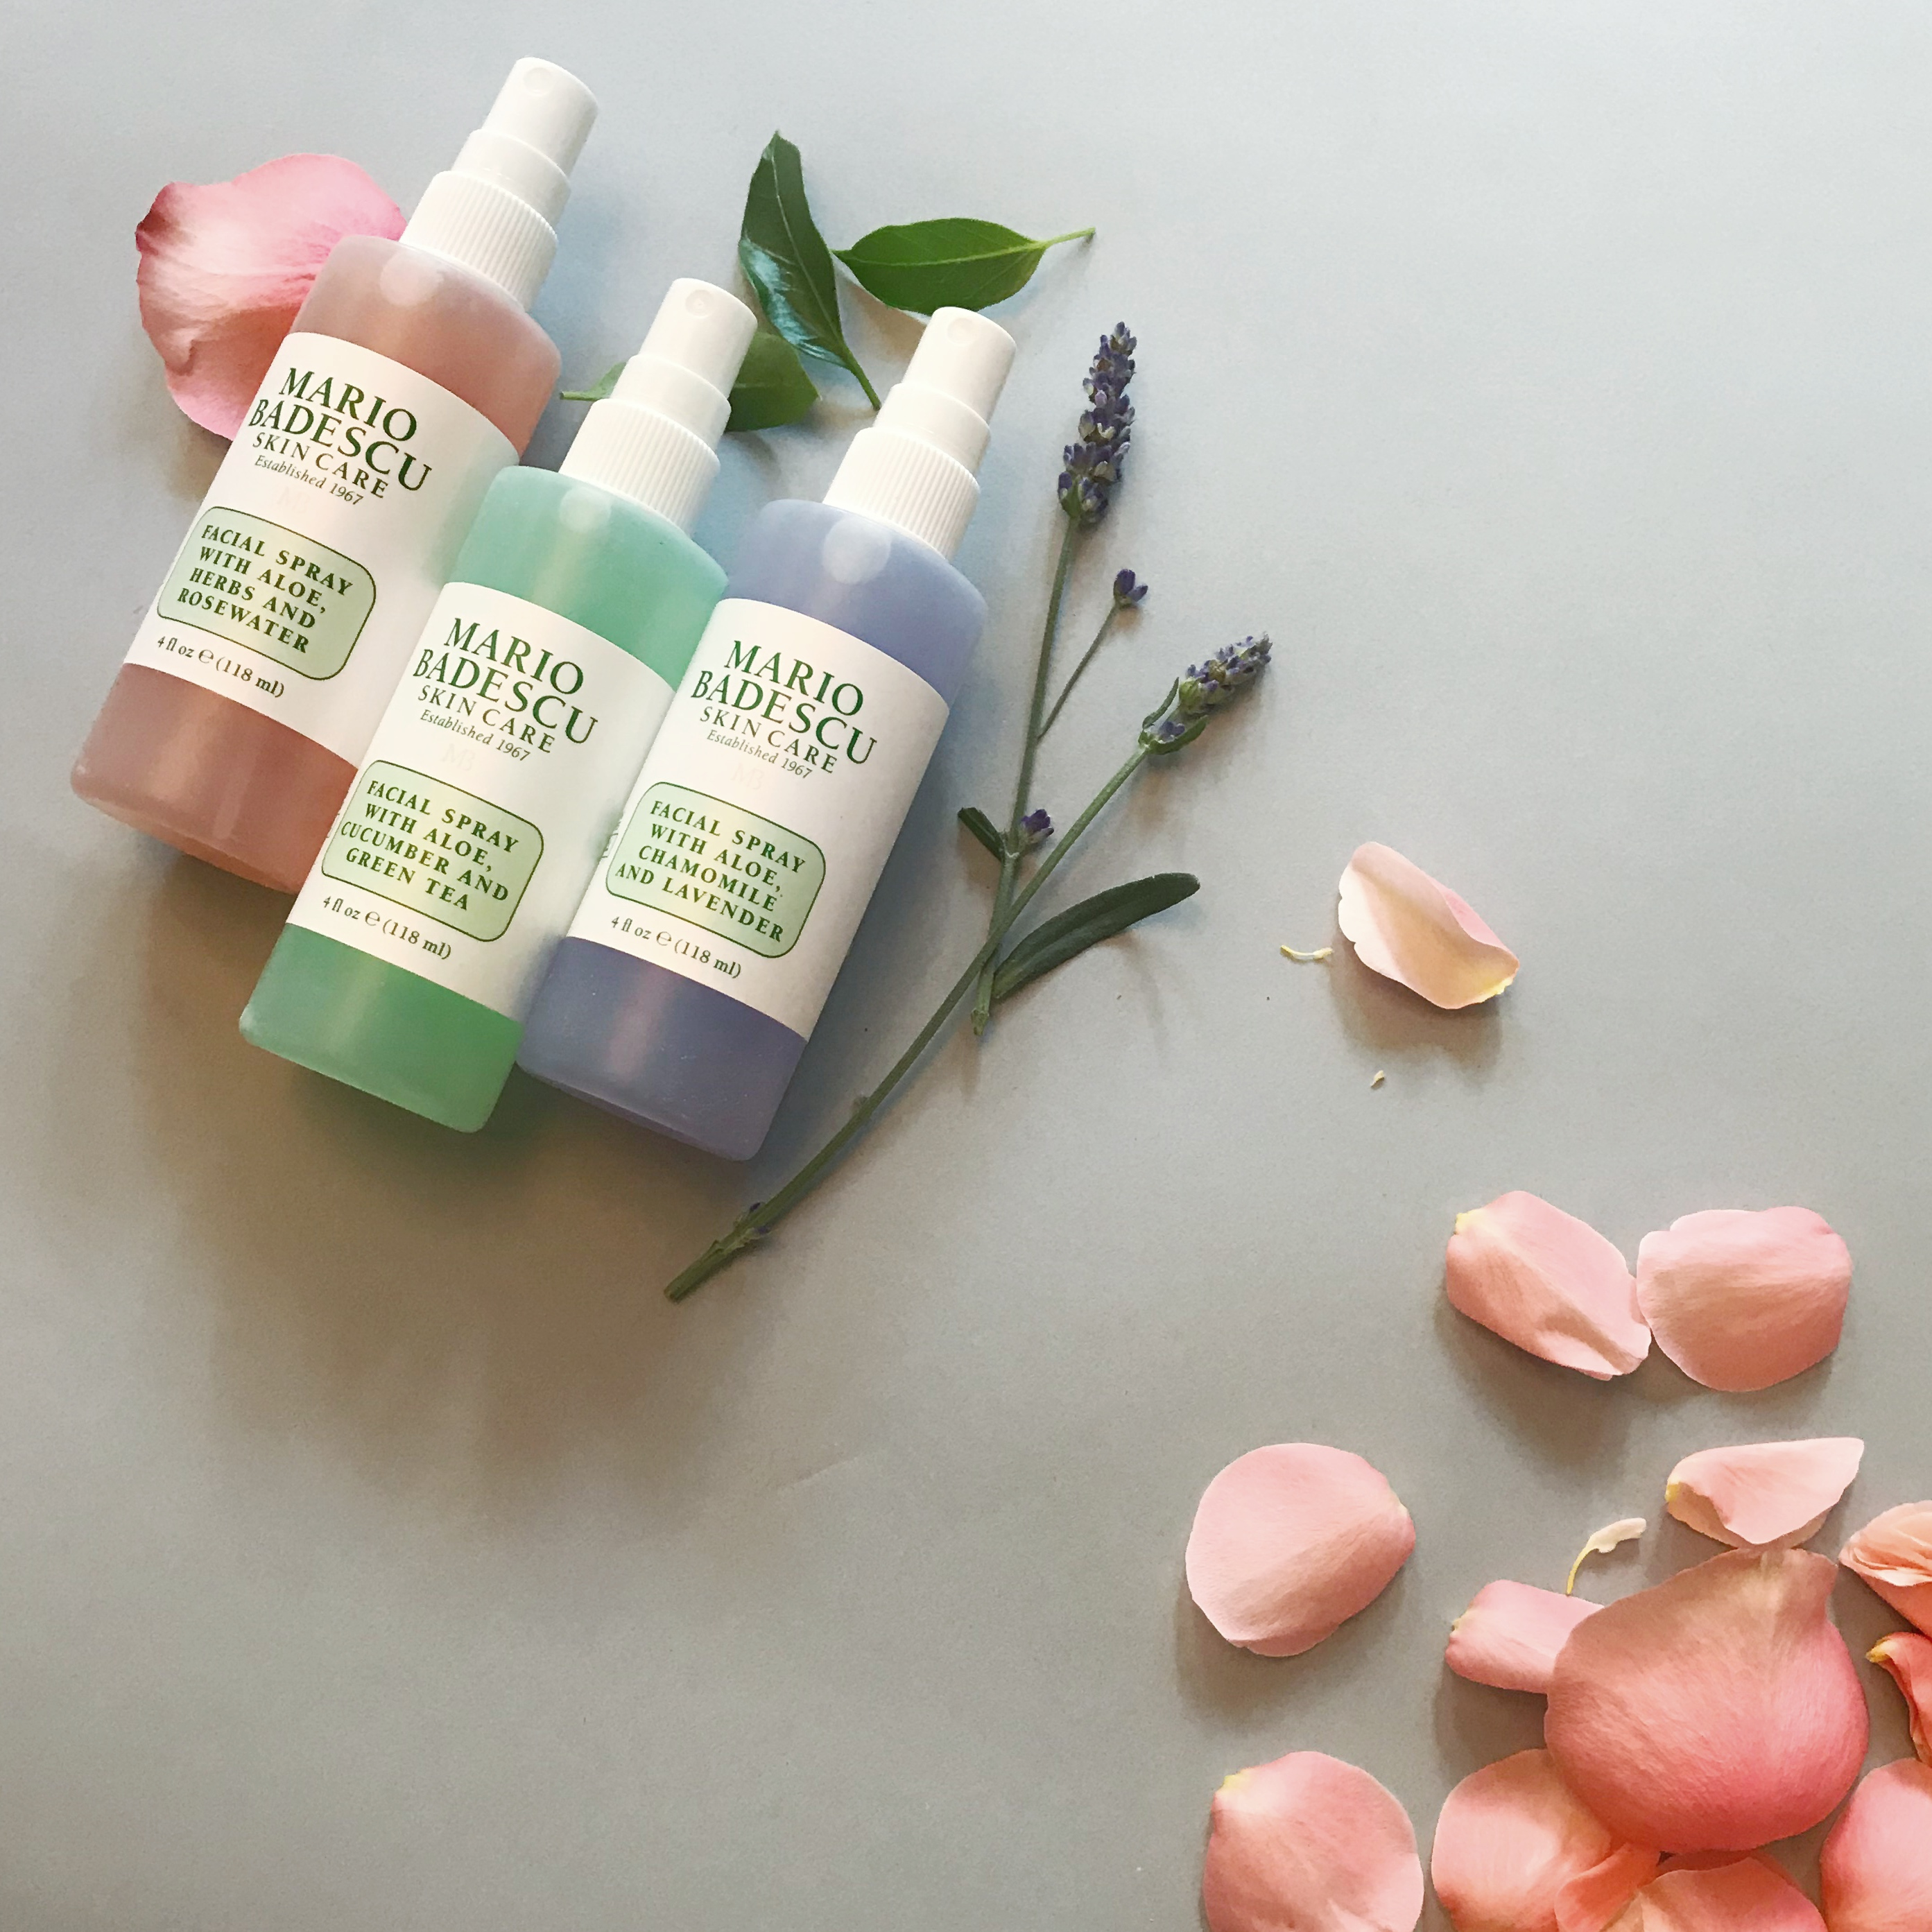 What's the difference between all three Mario Badescu Facial Sprays